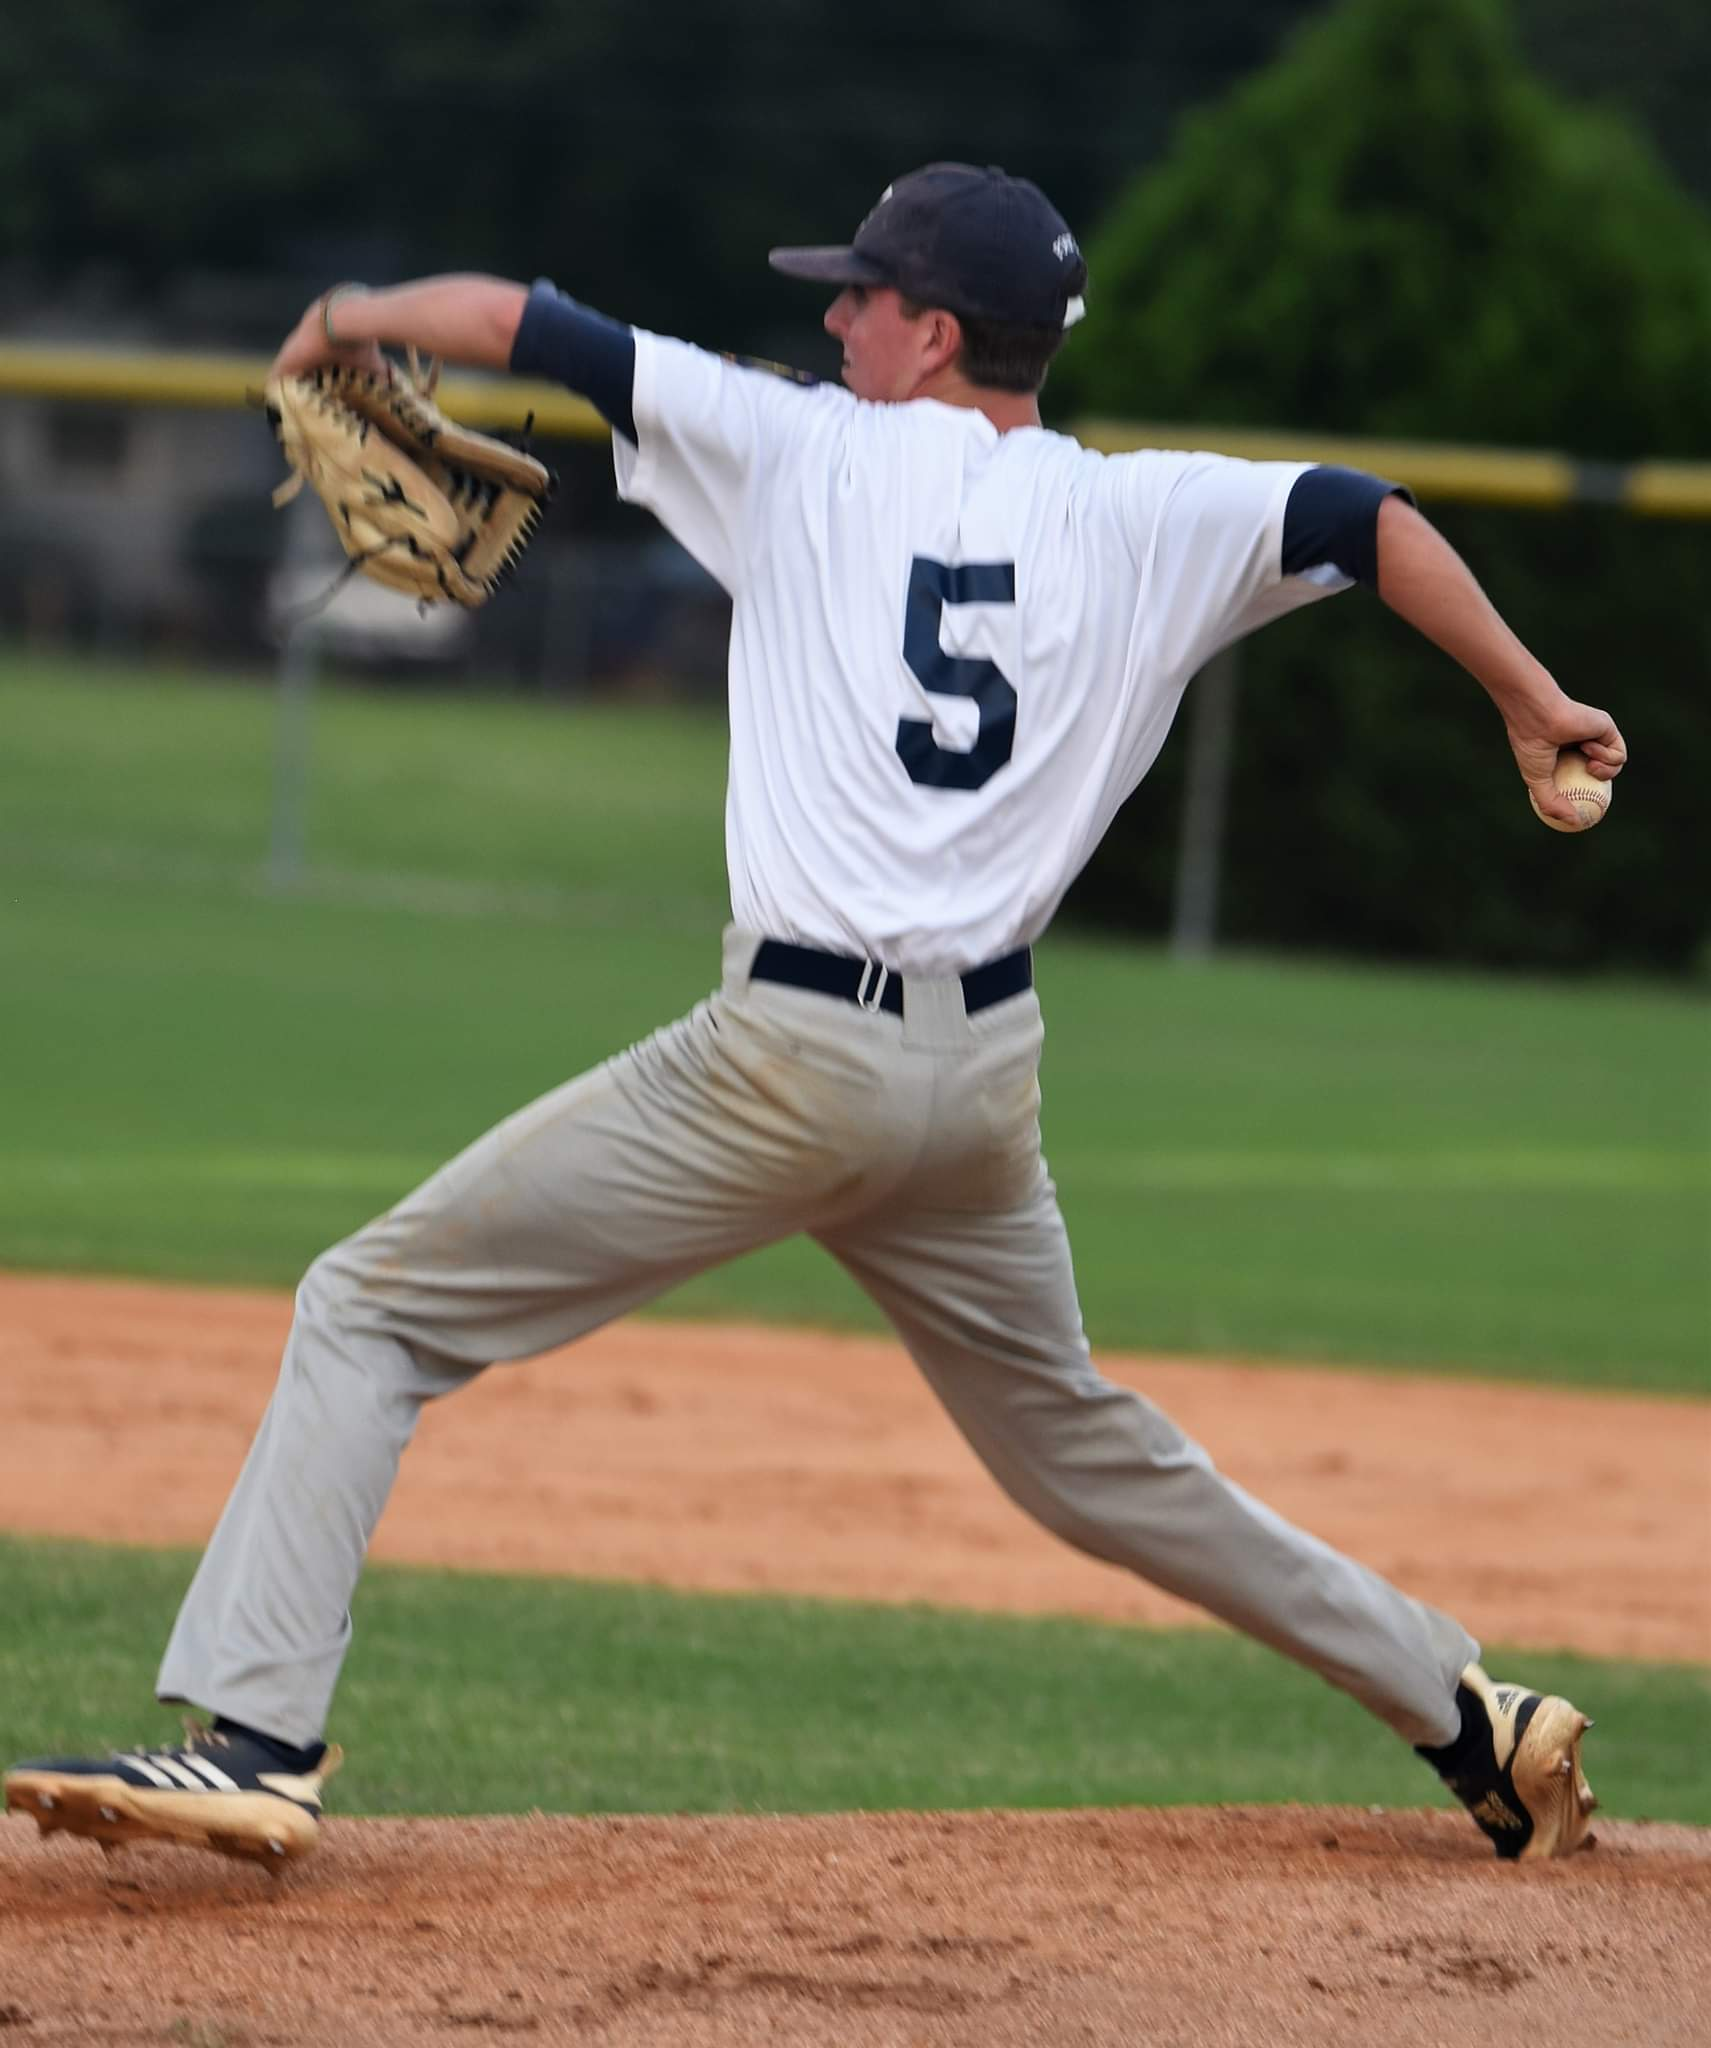 Kinston Post 43's Camden Noble started Thursday's game against Wayne County Post 11. Photo by William 'Bud' Hardy / Neuse News